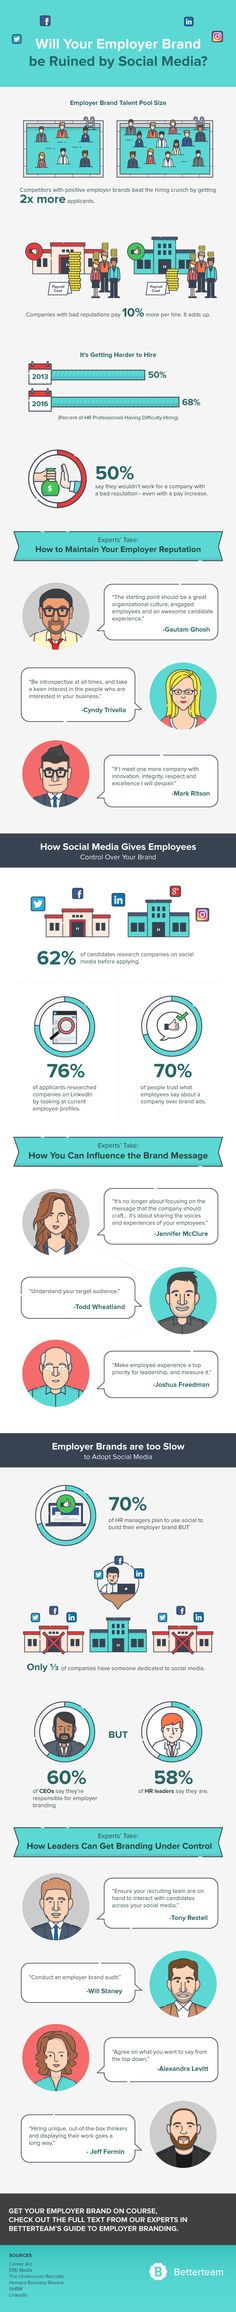 Business and management infographic & data visualisation Employer Branding – Should You Treat Employees Like Customers? Infographic Description [Infographic] Employer Branding – Should You Treat Employees Like Customers? Hr Management, Talent Management, Business Management, Employer Branding, Free Infographic, Infographics, Employee Engagement, Data Visualization, Public Relations